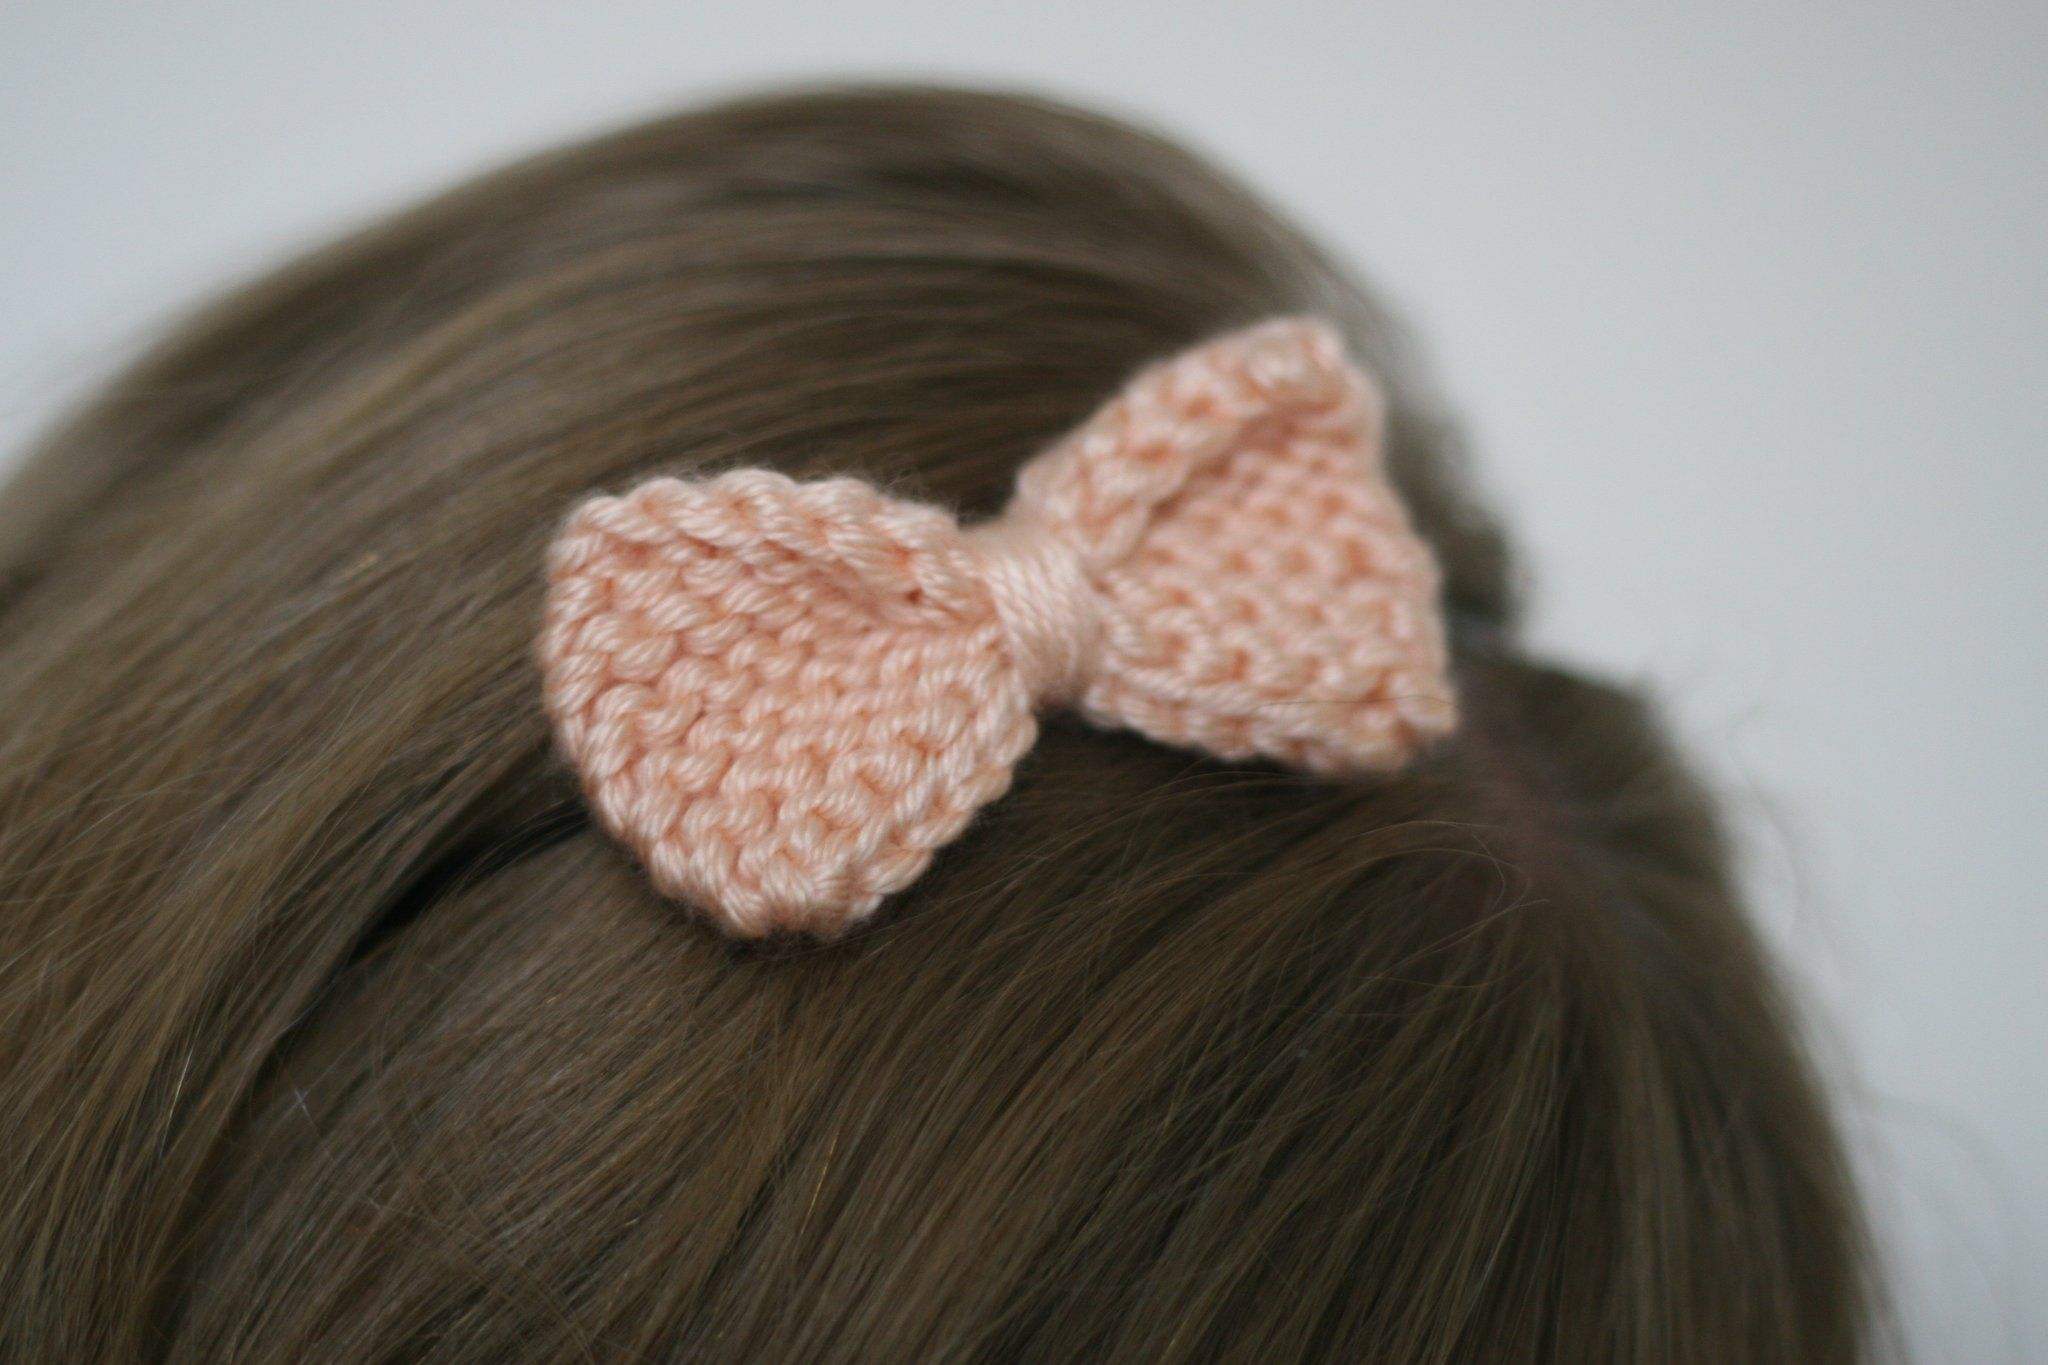 The knit bow is fastened to a black metal headband it easily fits